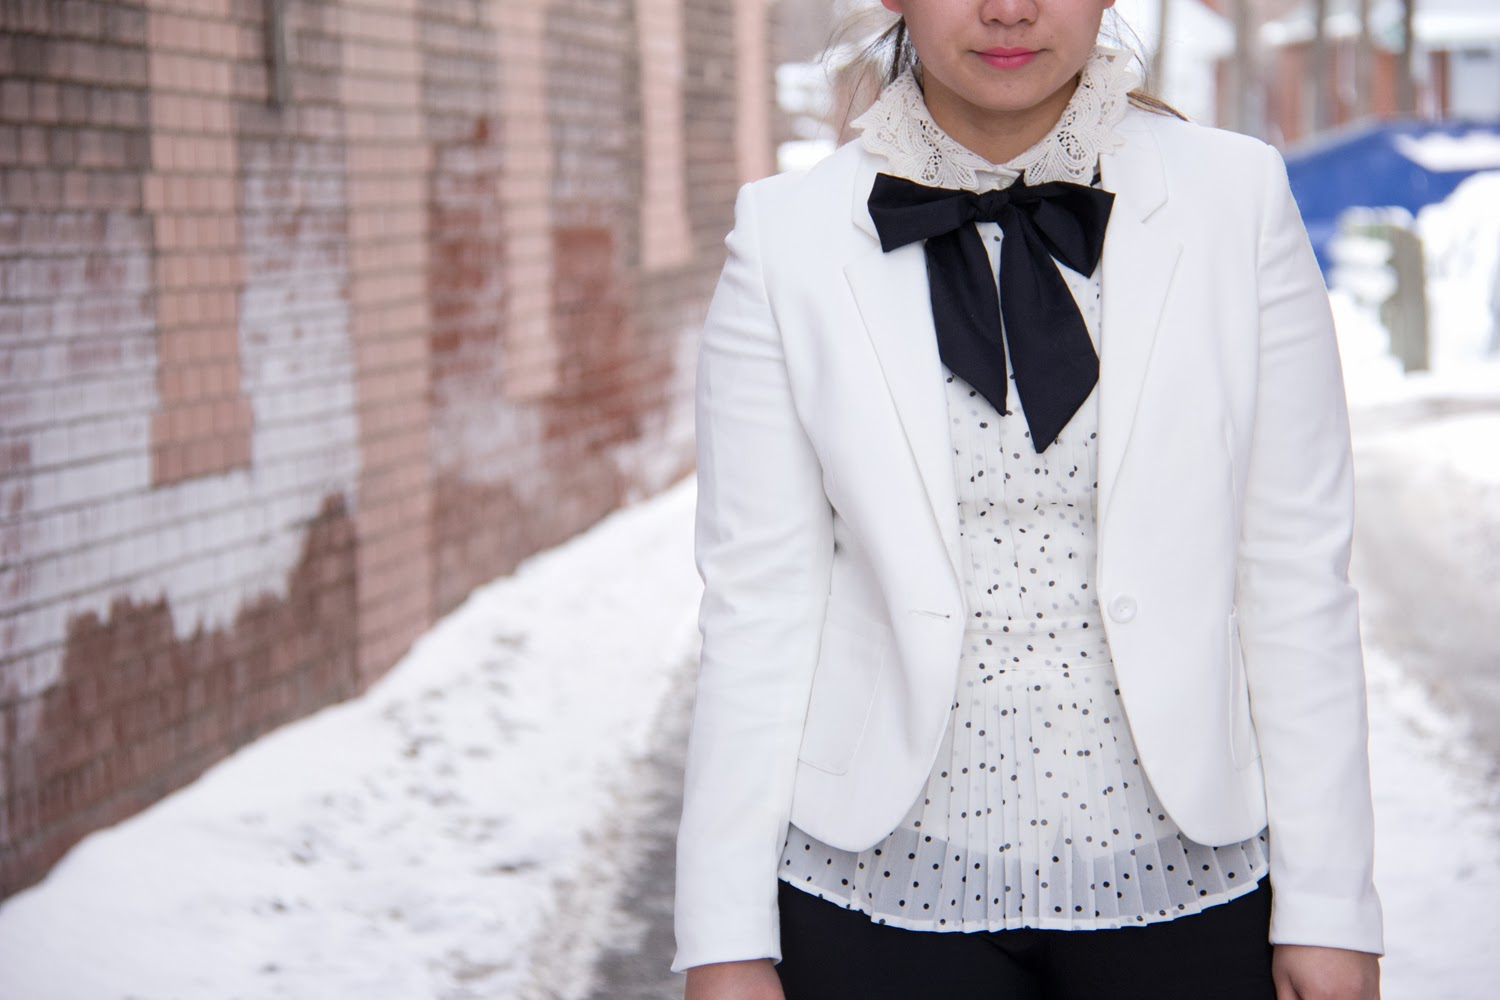 Lace-Collar, Black-And-White, Bow-Tie, Menswear-Inspired, White-Blazer, Polka-Dot